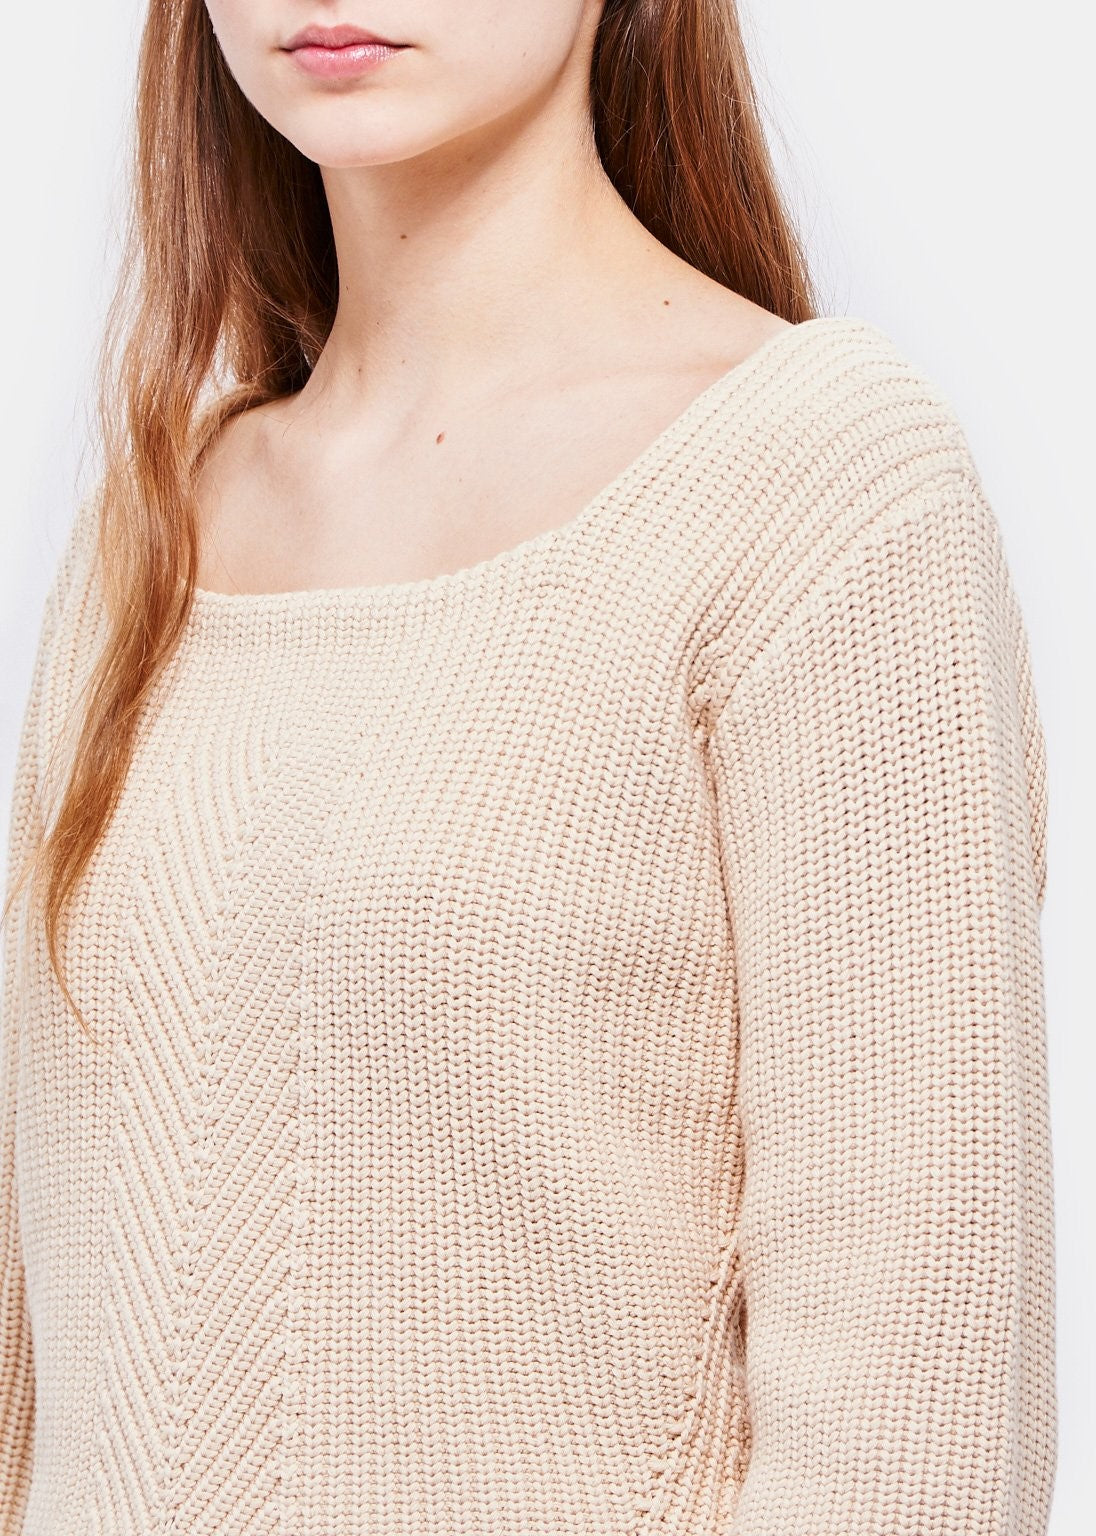 Demylee Maran sweater in off-white